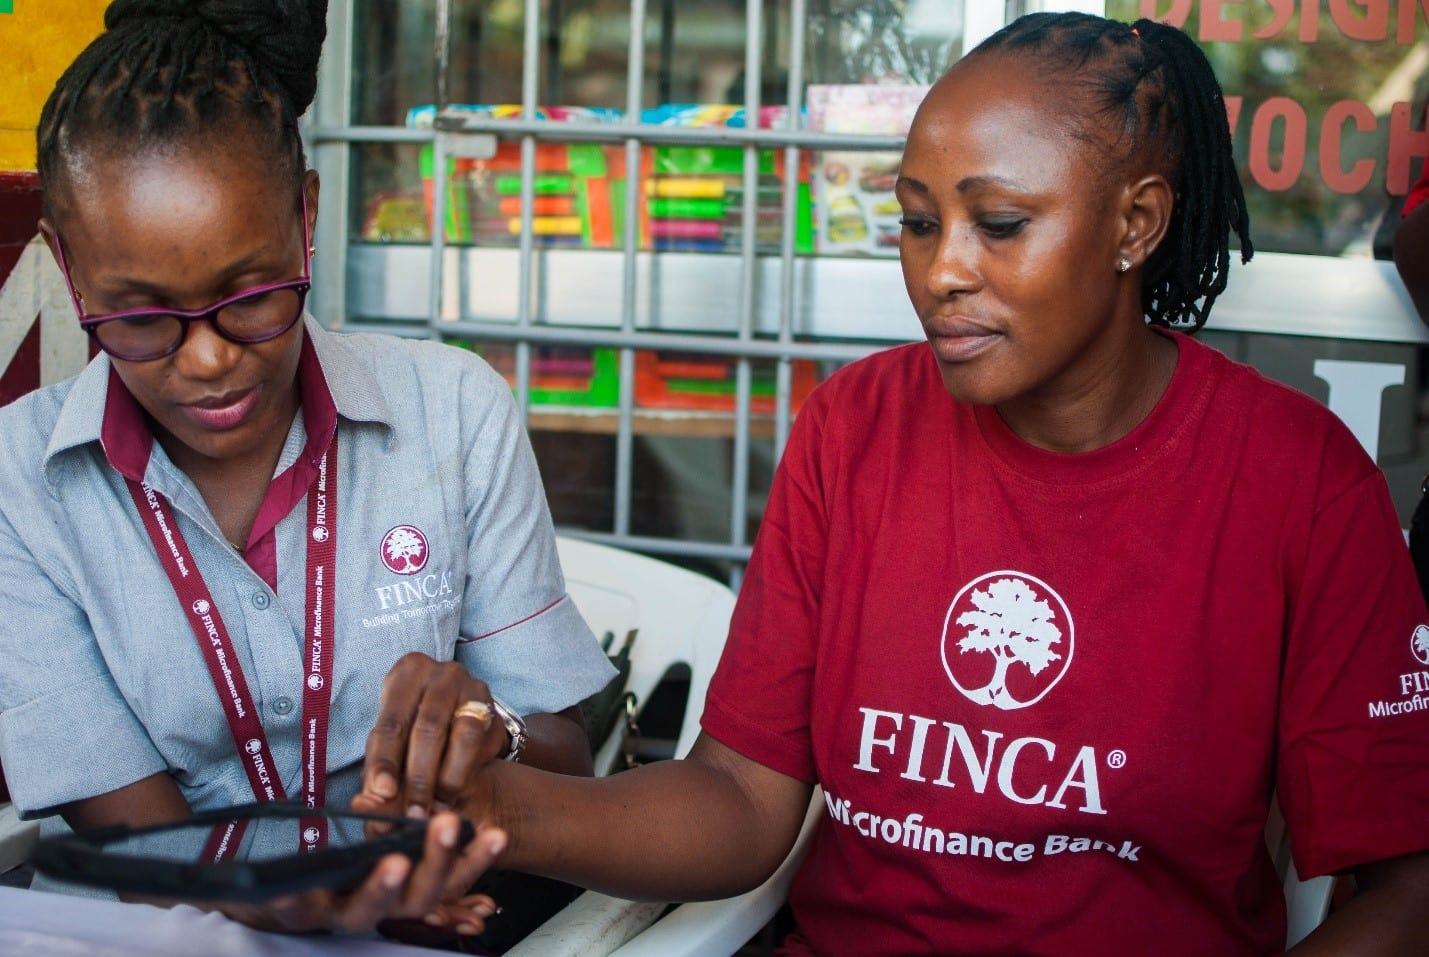 Fintech innovations like agent banking can help women access responsible financial services.